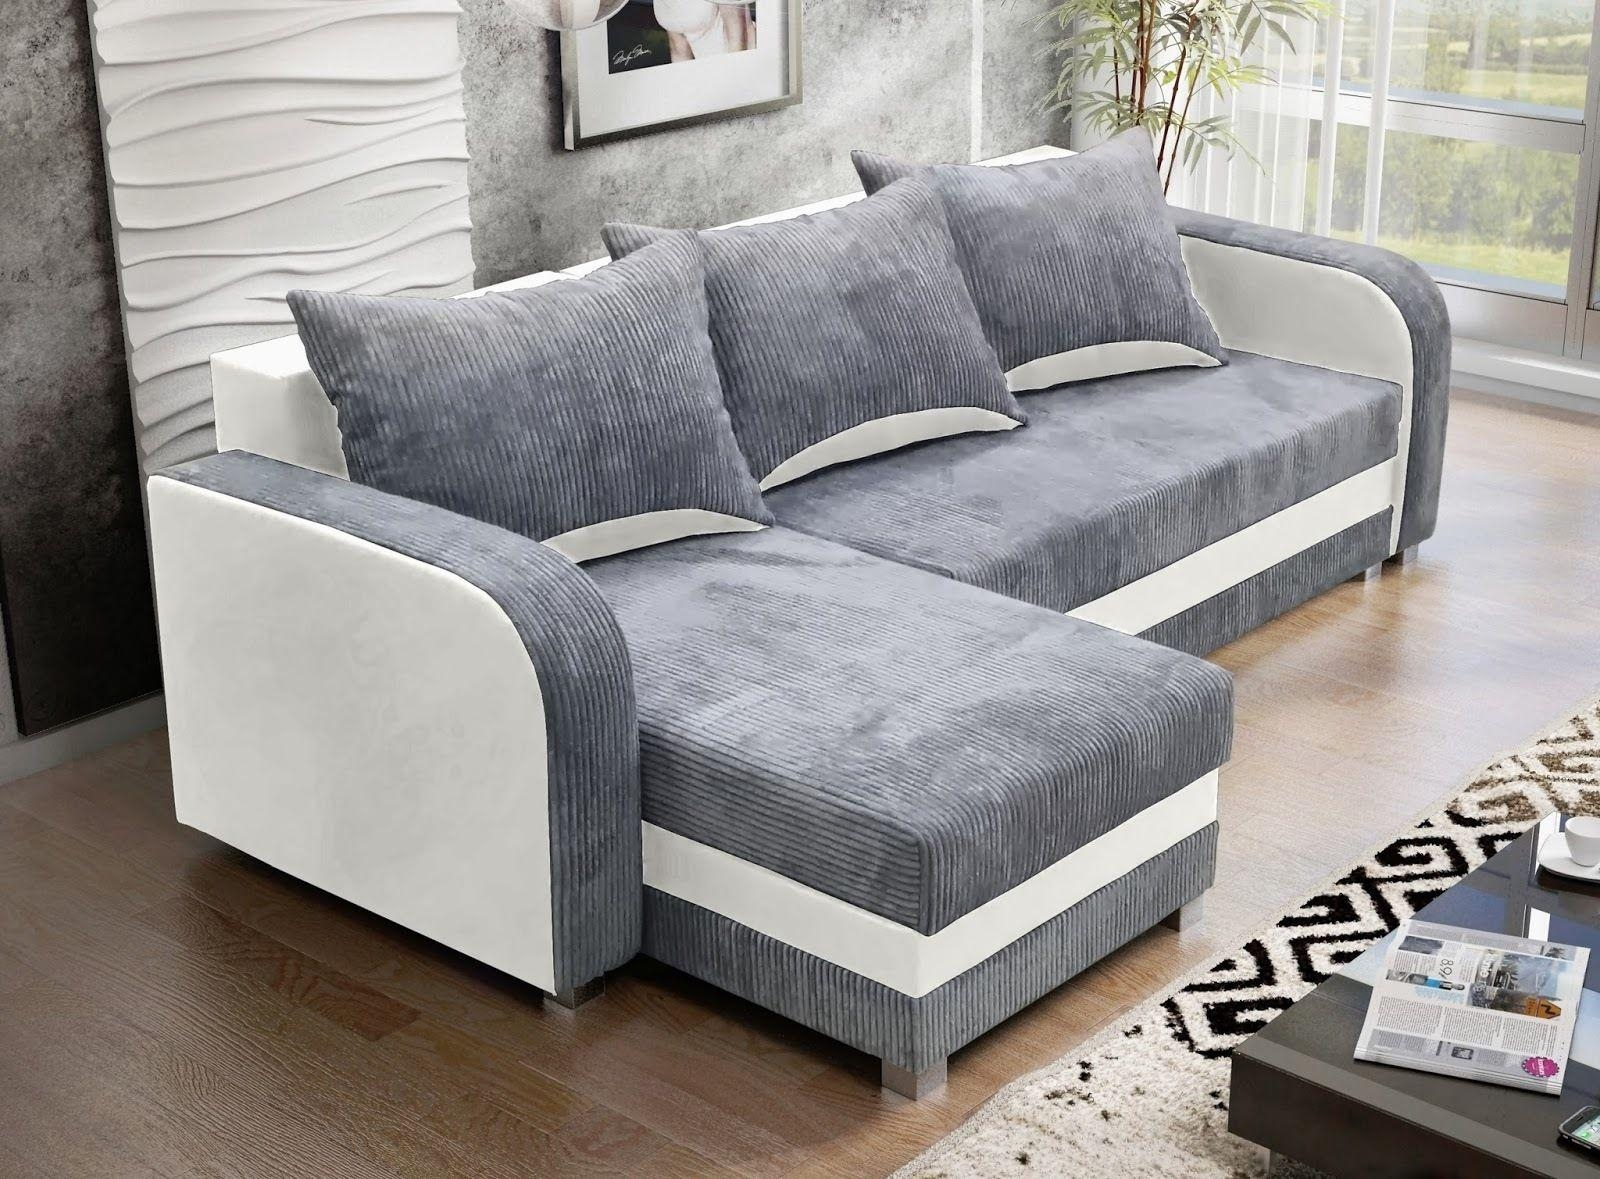 Sofa Bed Sale Pertaining To Corner Sofa Bed Sale (View 3 of 20)